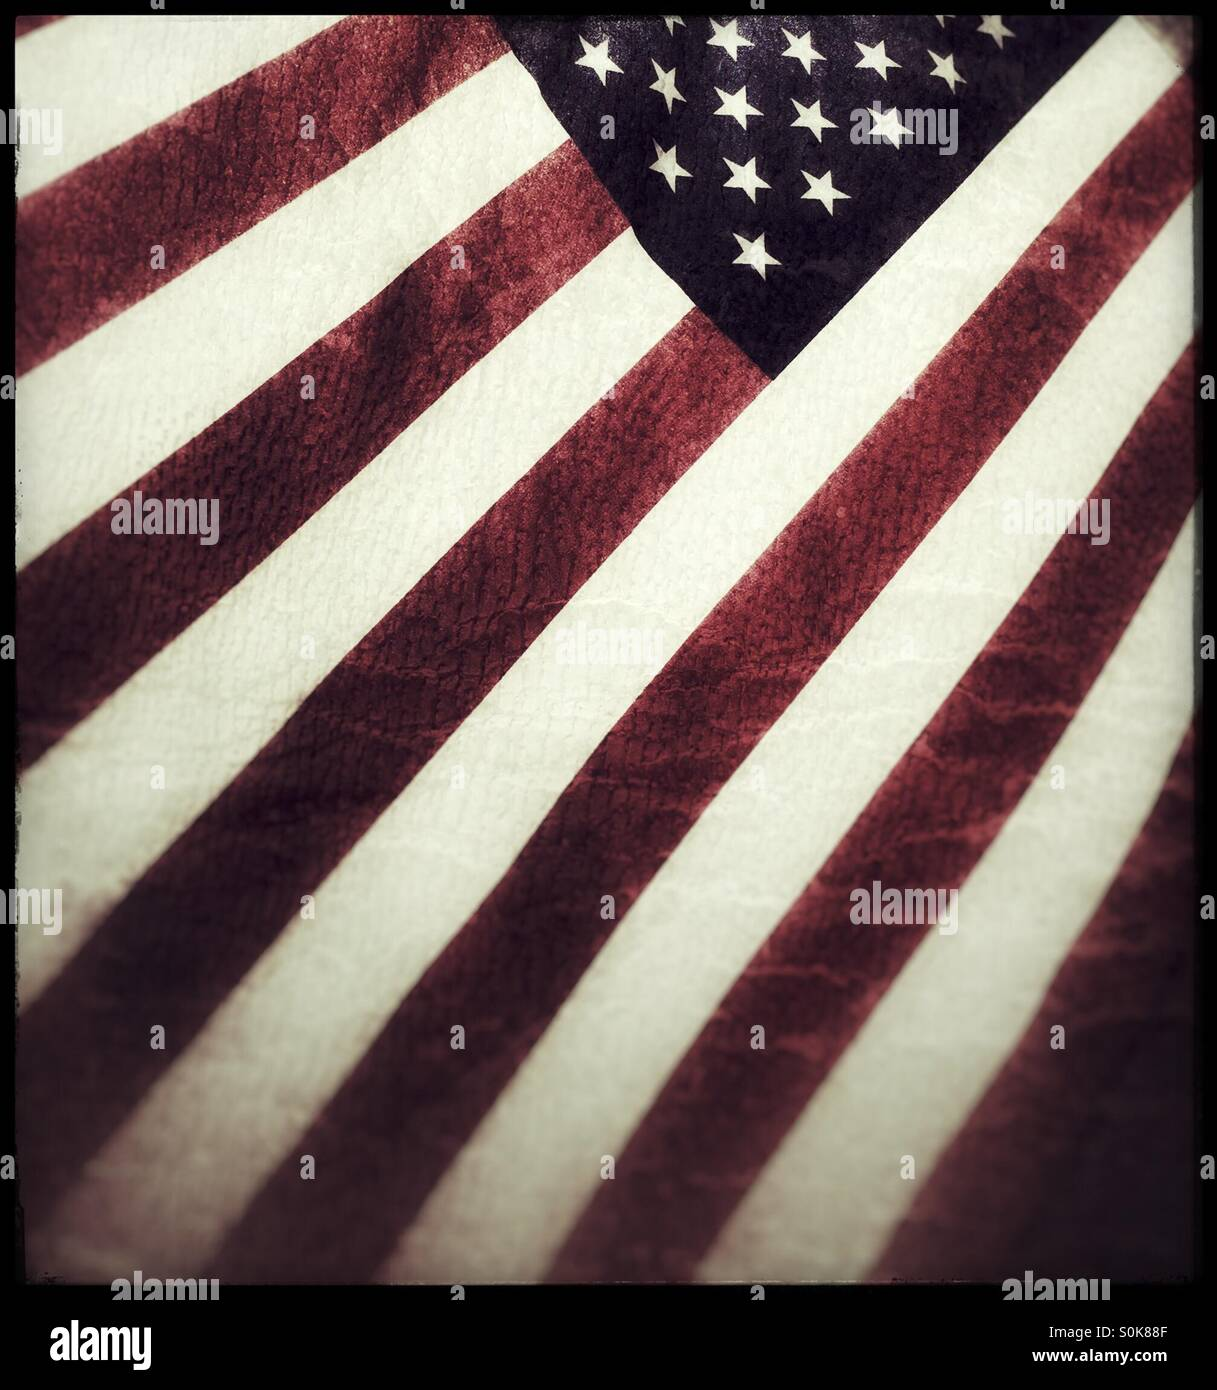 09524010d42 Stars And Stripes Stock Photos   Stars And Stripes Stock Images - Alamy